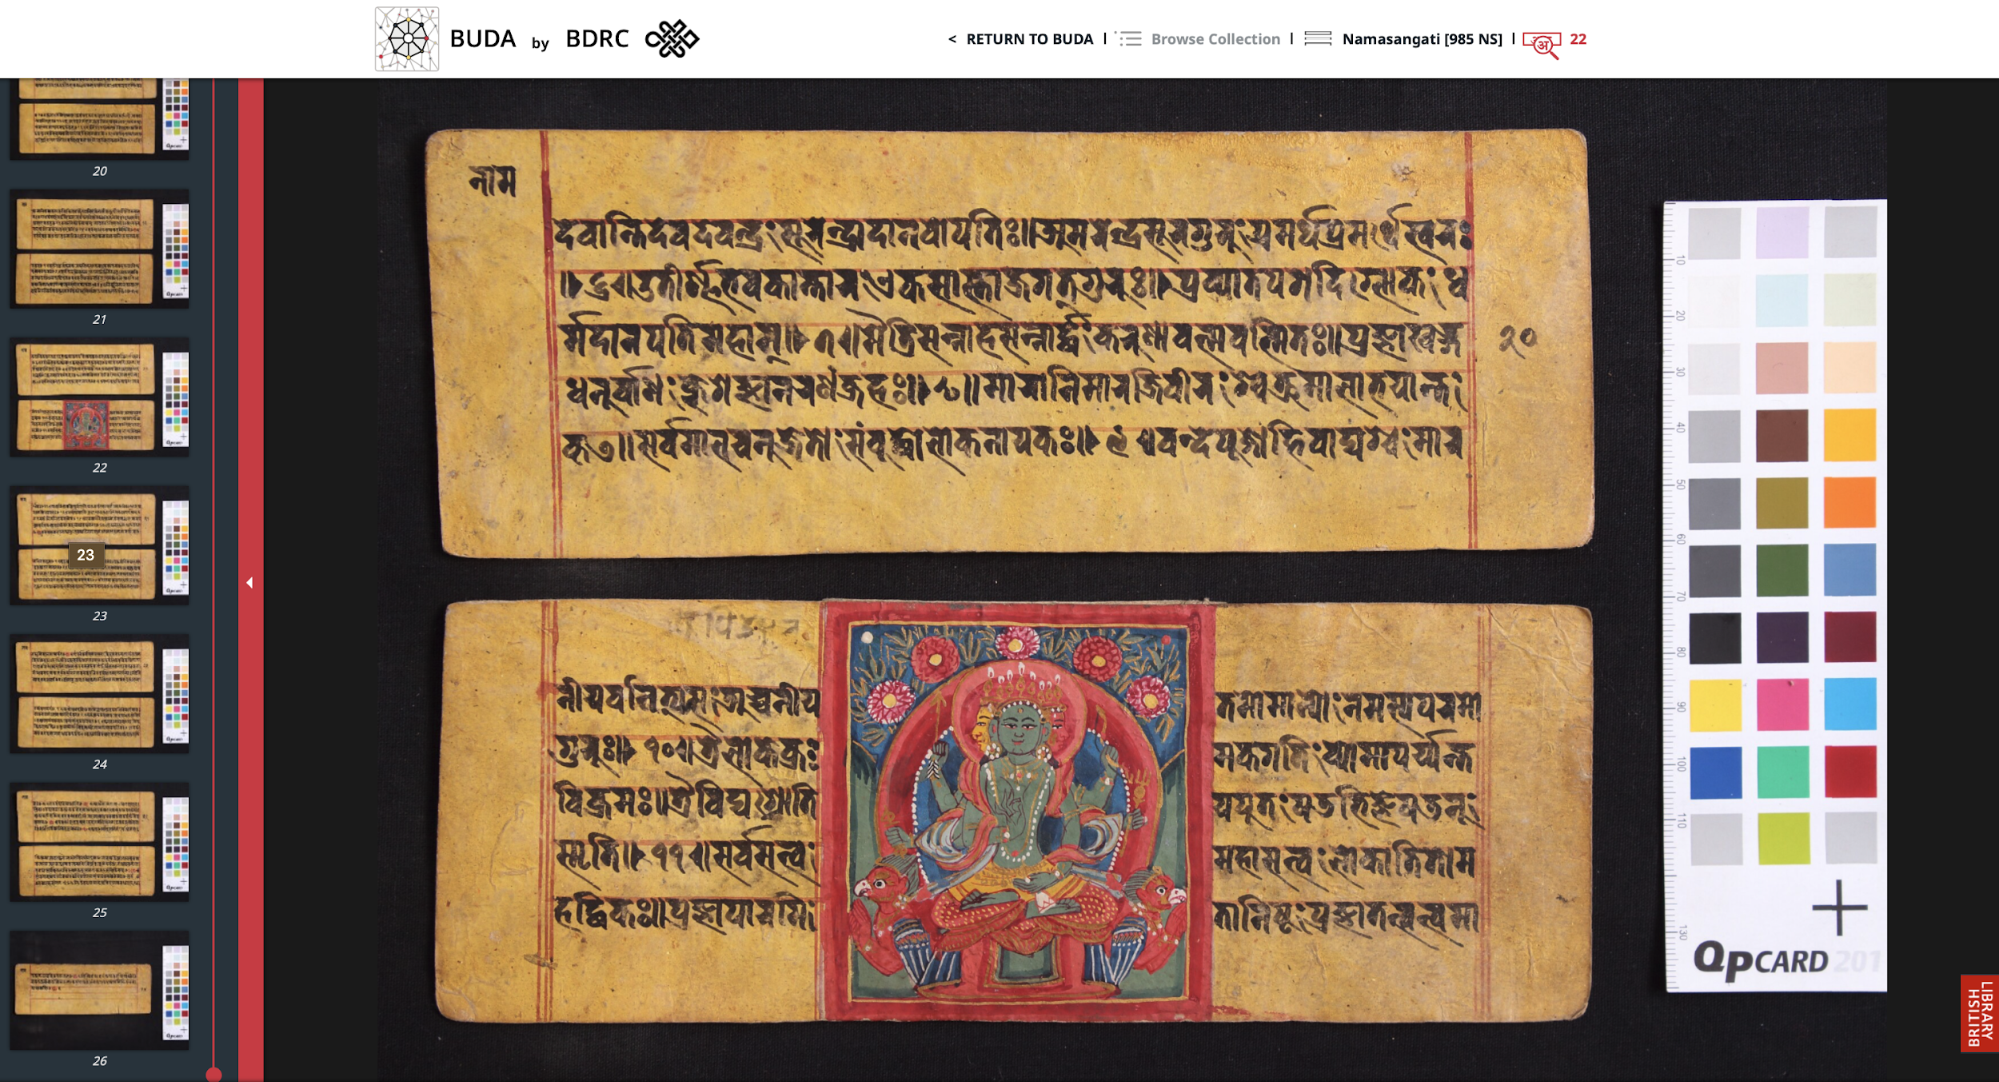 manuscript of the Mañjuśrīnāmasaṃgīti digitized in Kathmandu under the auspices of the Endangered Archives Programme at the British Library